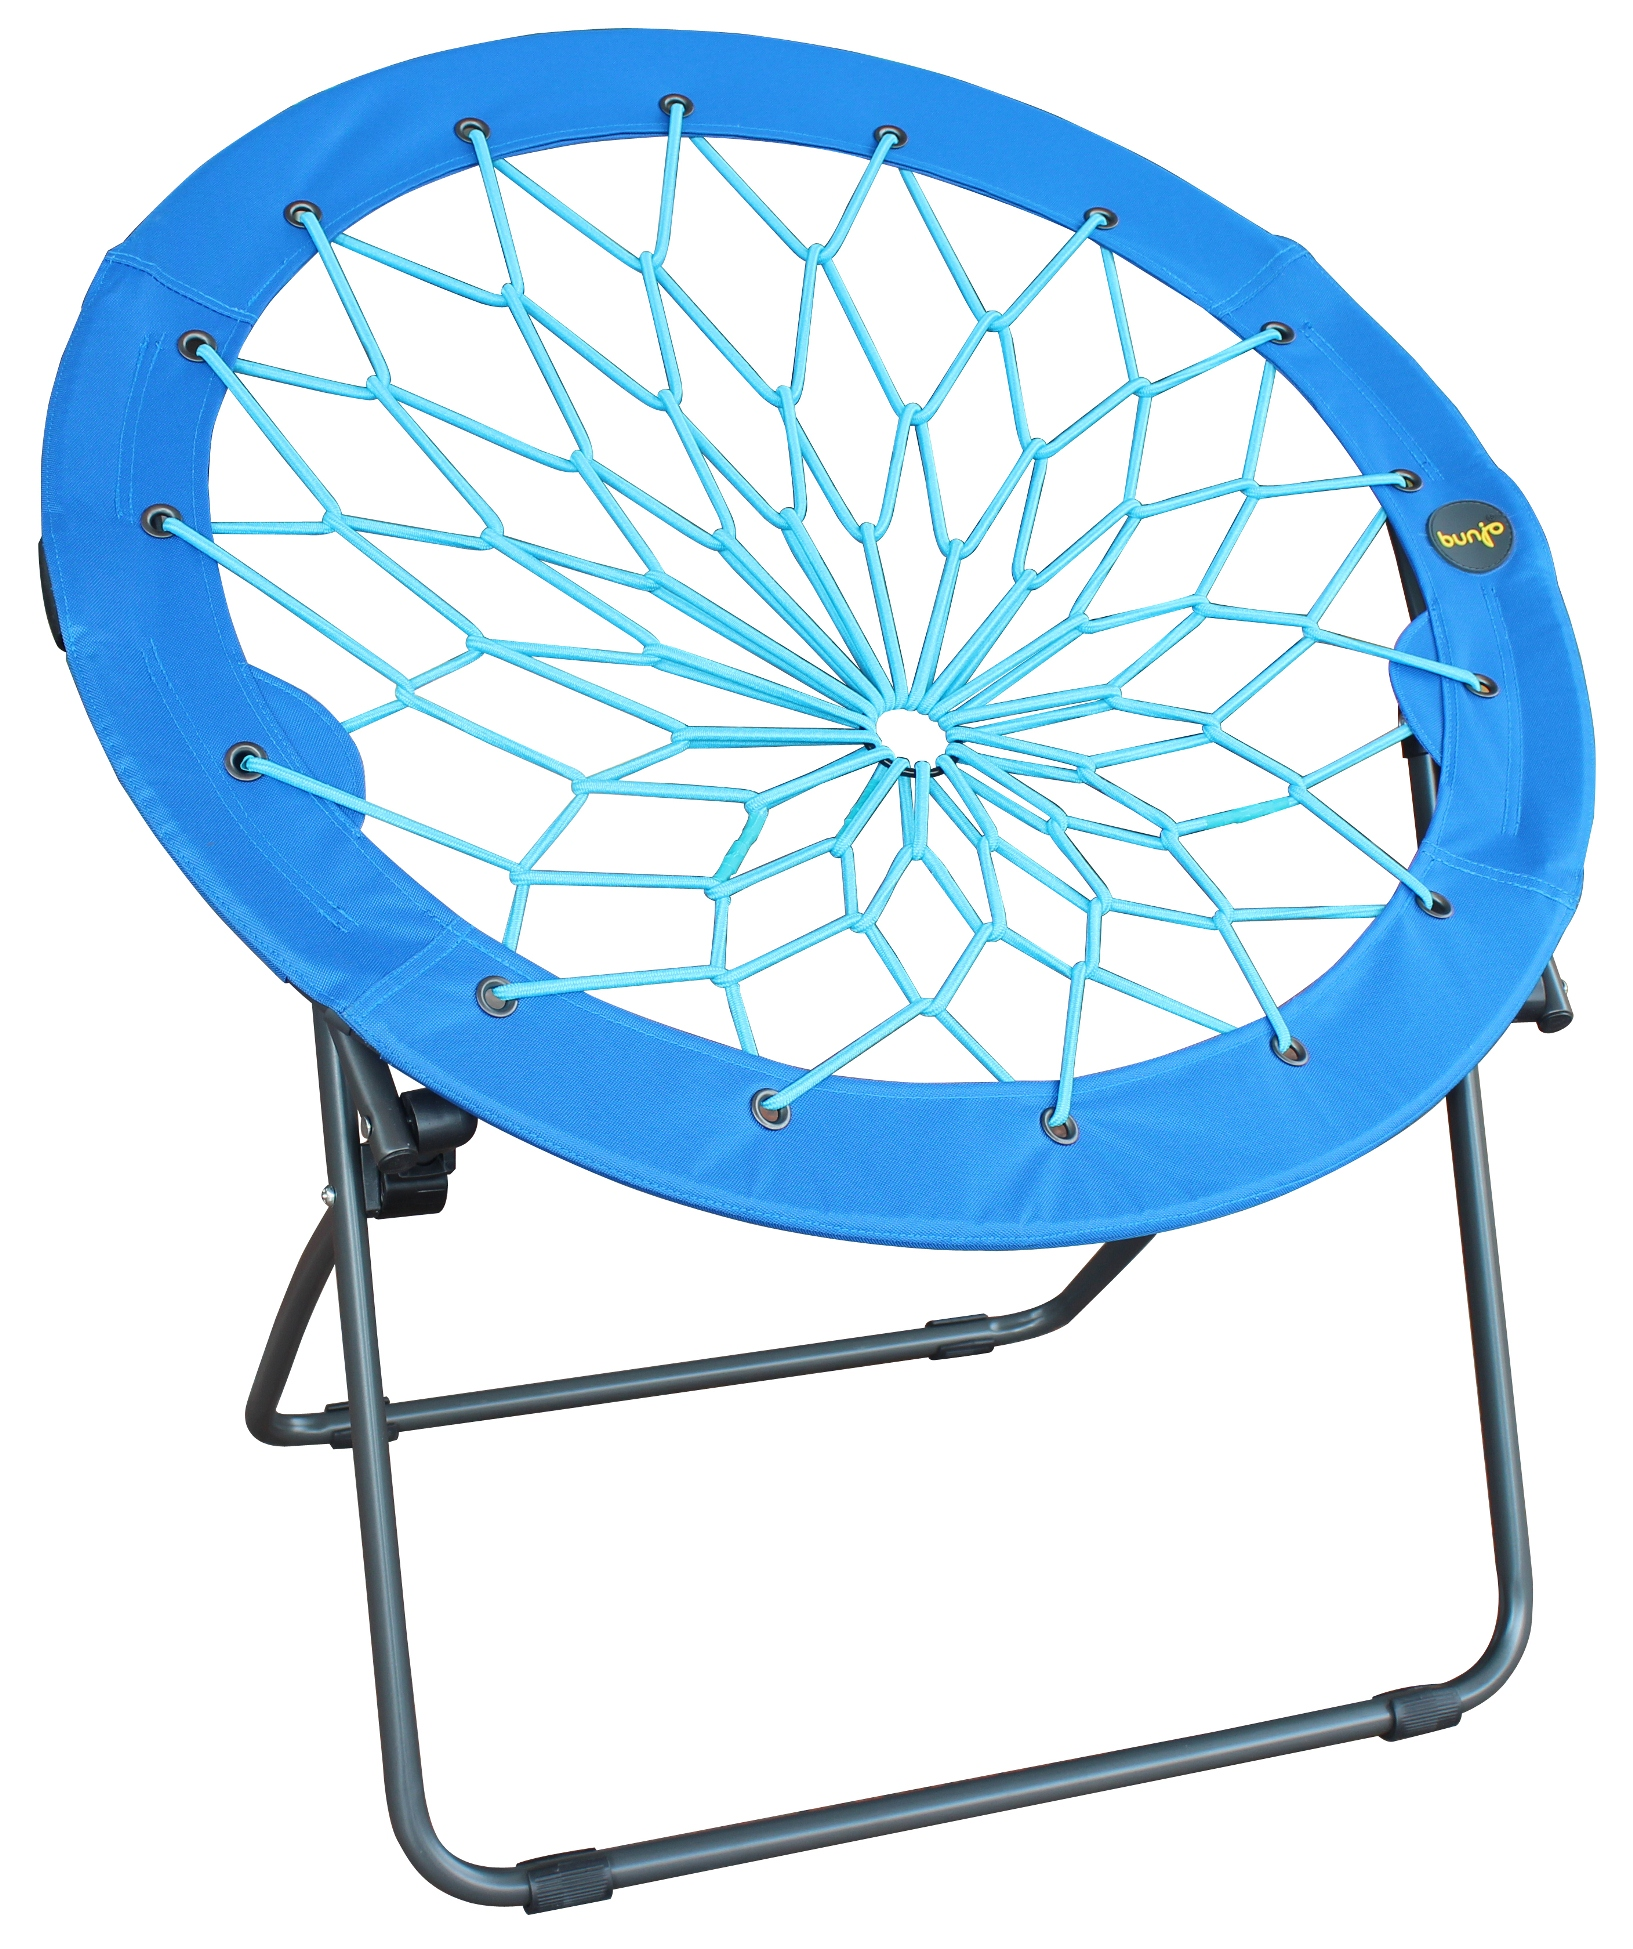 Blue Bunjo Bungee Chair$24.99 + $4.99 in SYWR Points